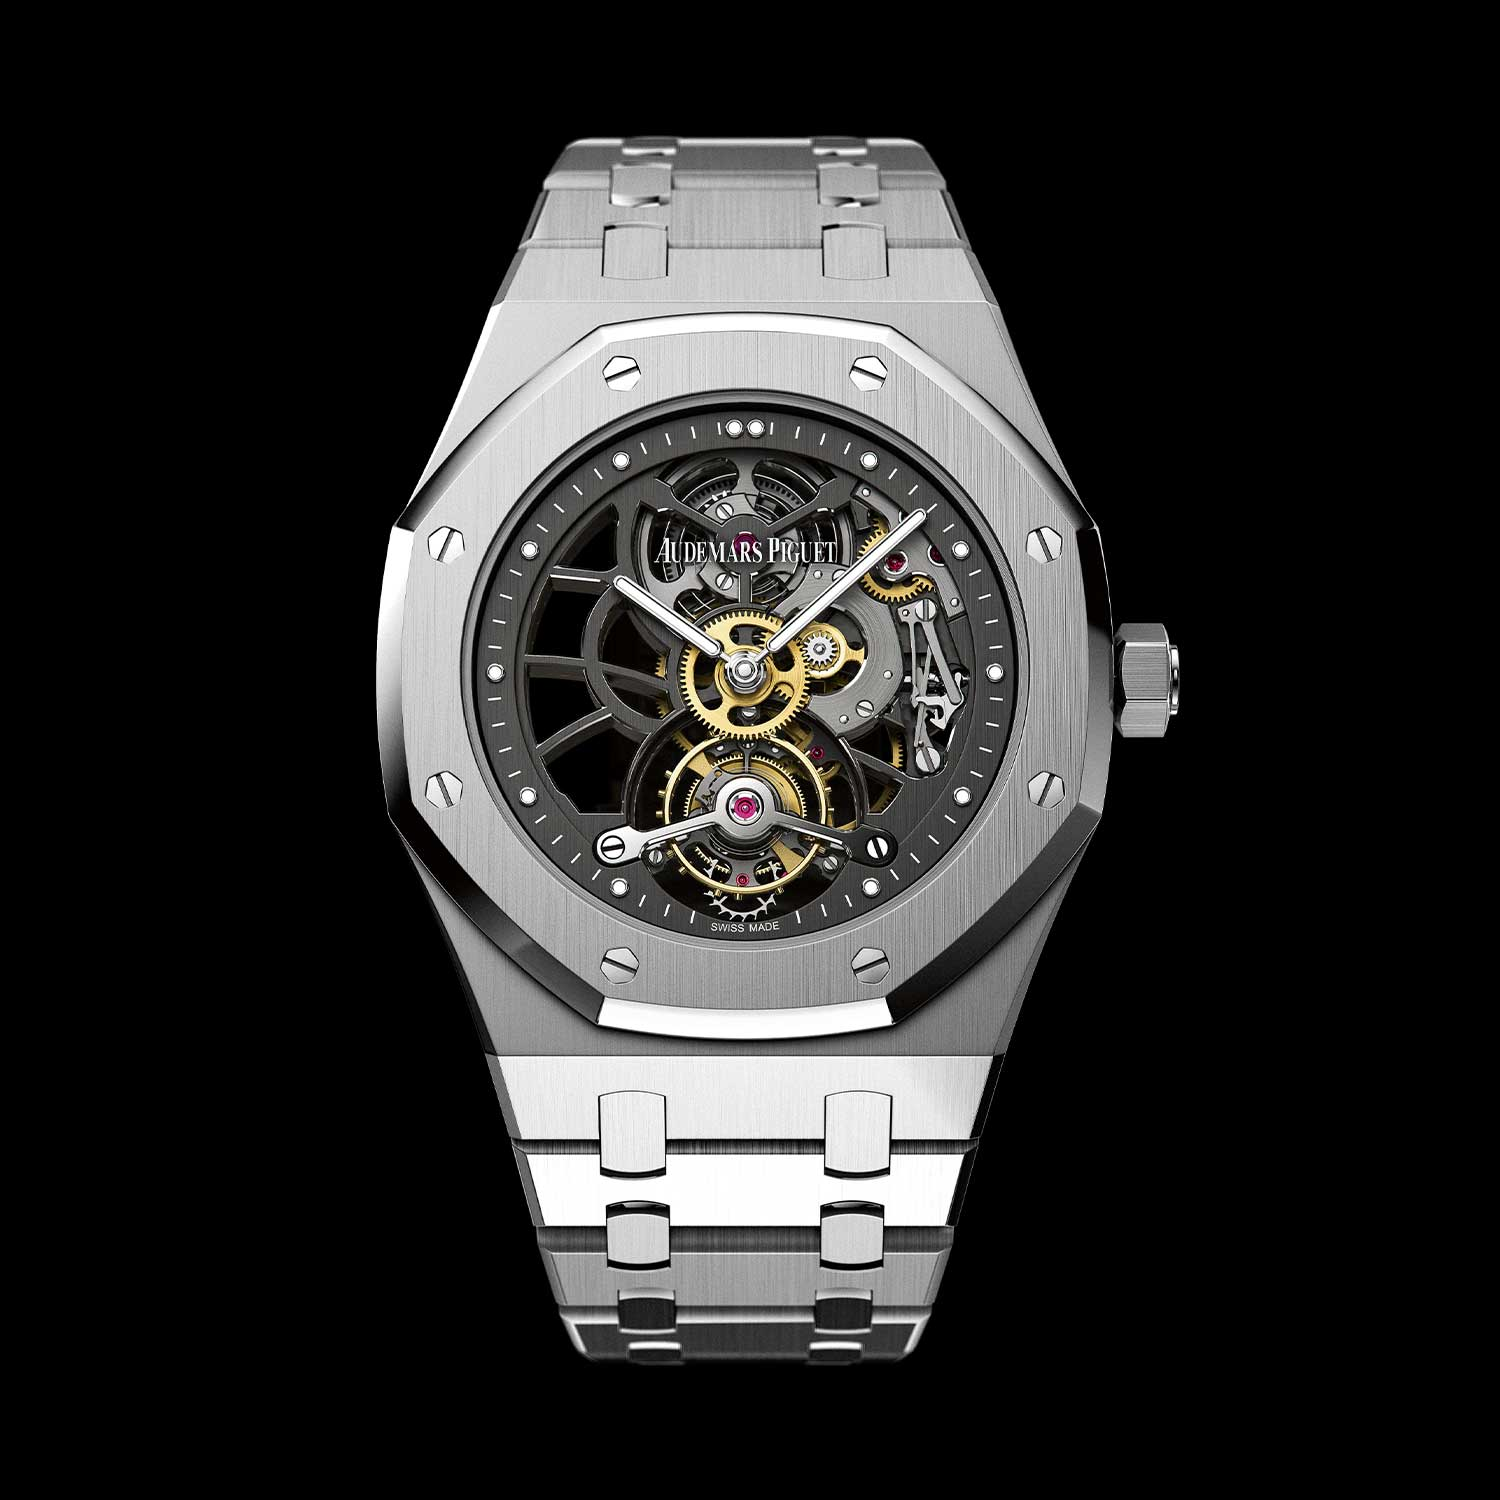 2012: The Audemars Piguet Openworked Extra-Thin Royal Oak Tourbillon 40th Anniversary Limited Edition, in a 41mm 950 platinum case powered by the hand-wound Manufacture Calibre 2924; issued in a limited run of 40 pieces